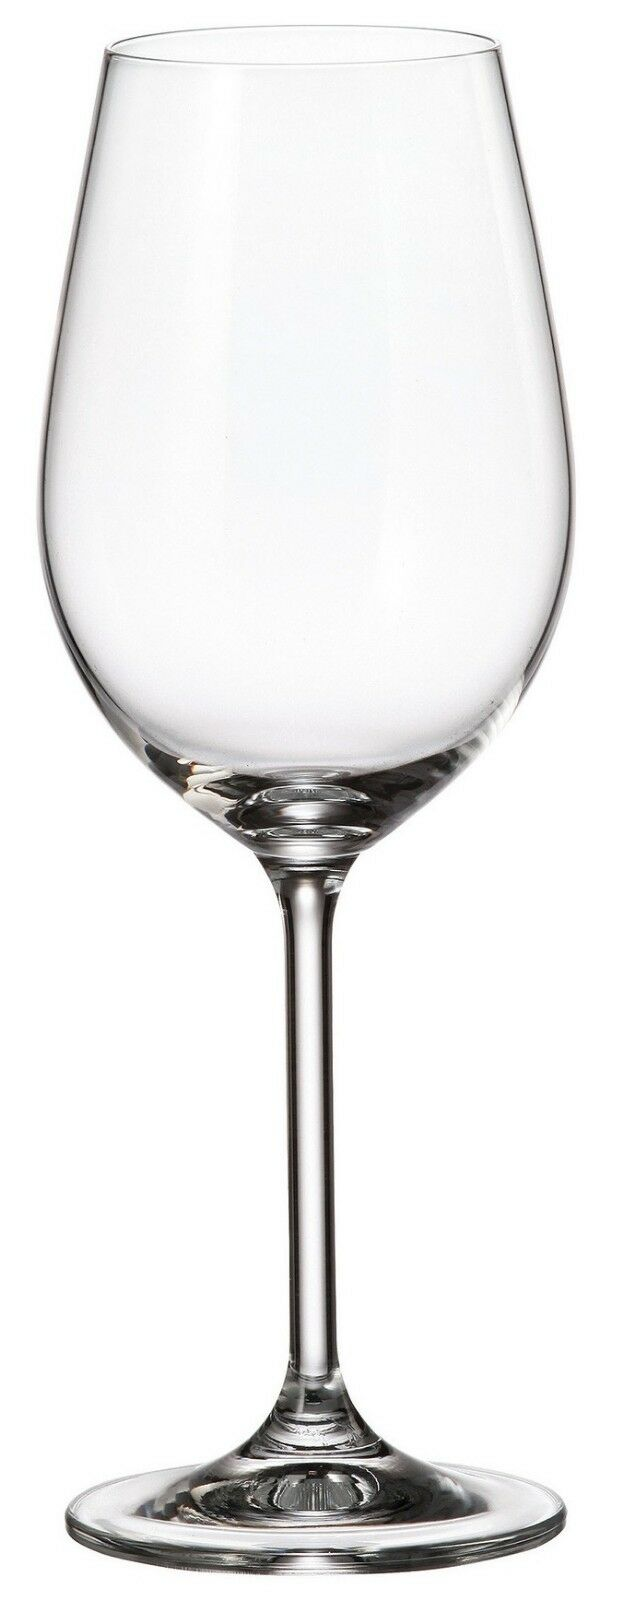 Bohemia Crystal Set of 6 White Wine Glasses Colibri Range 350ml